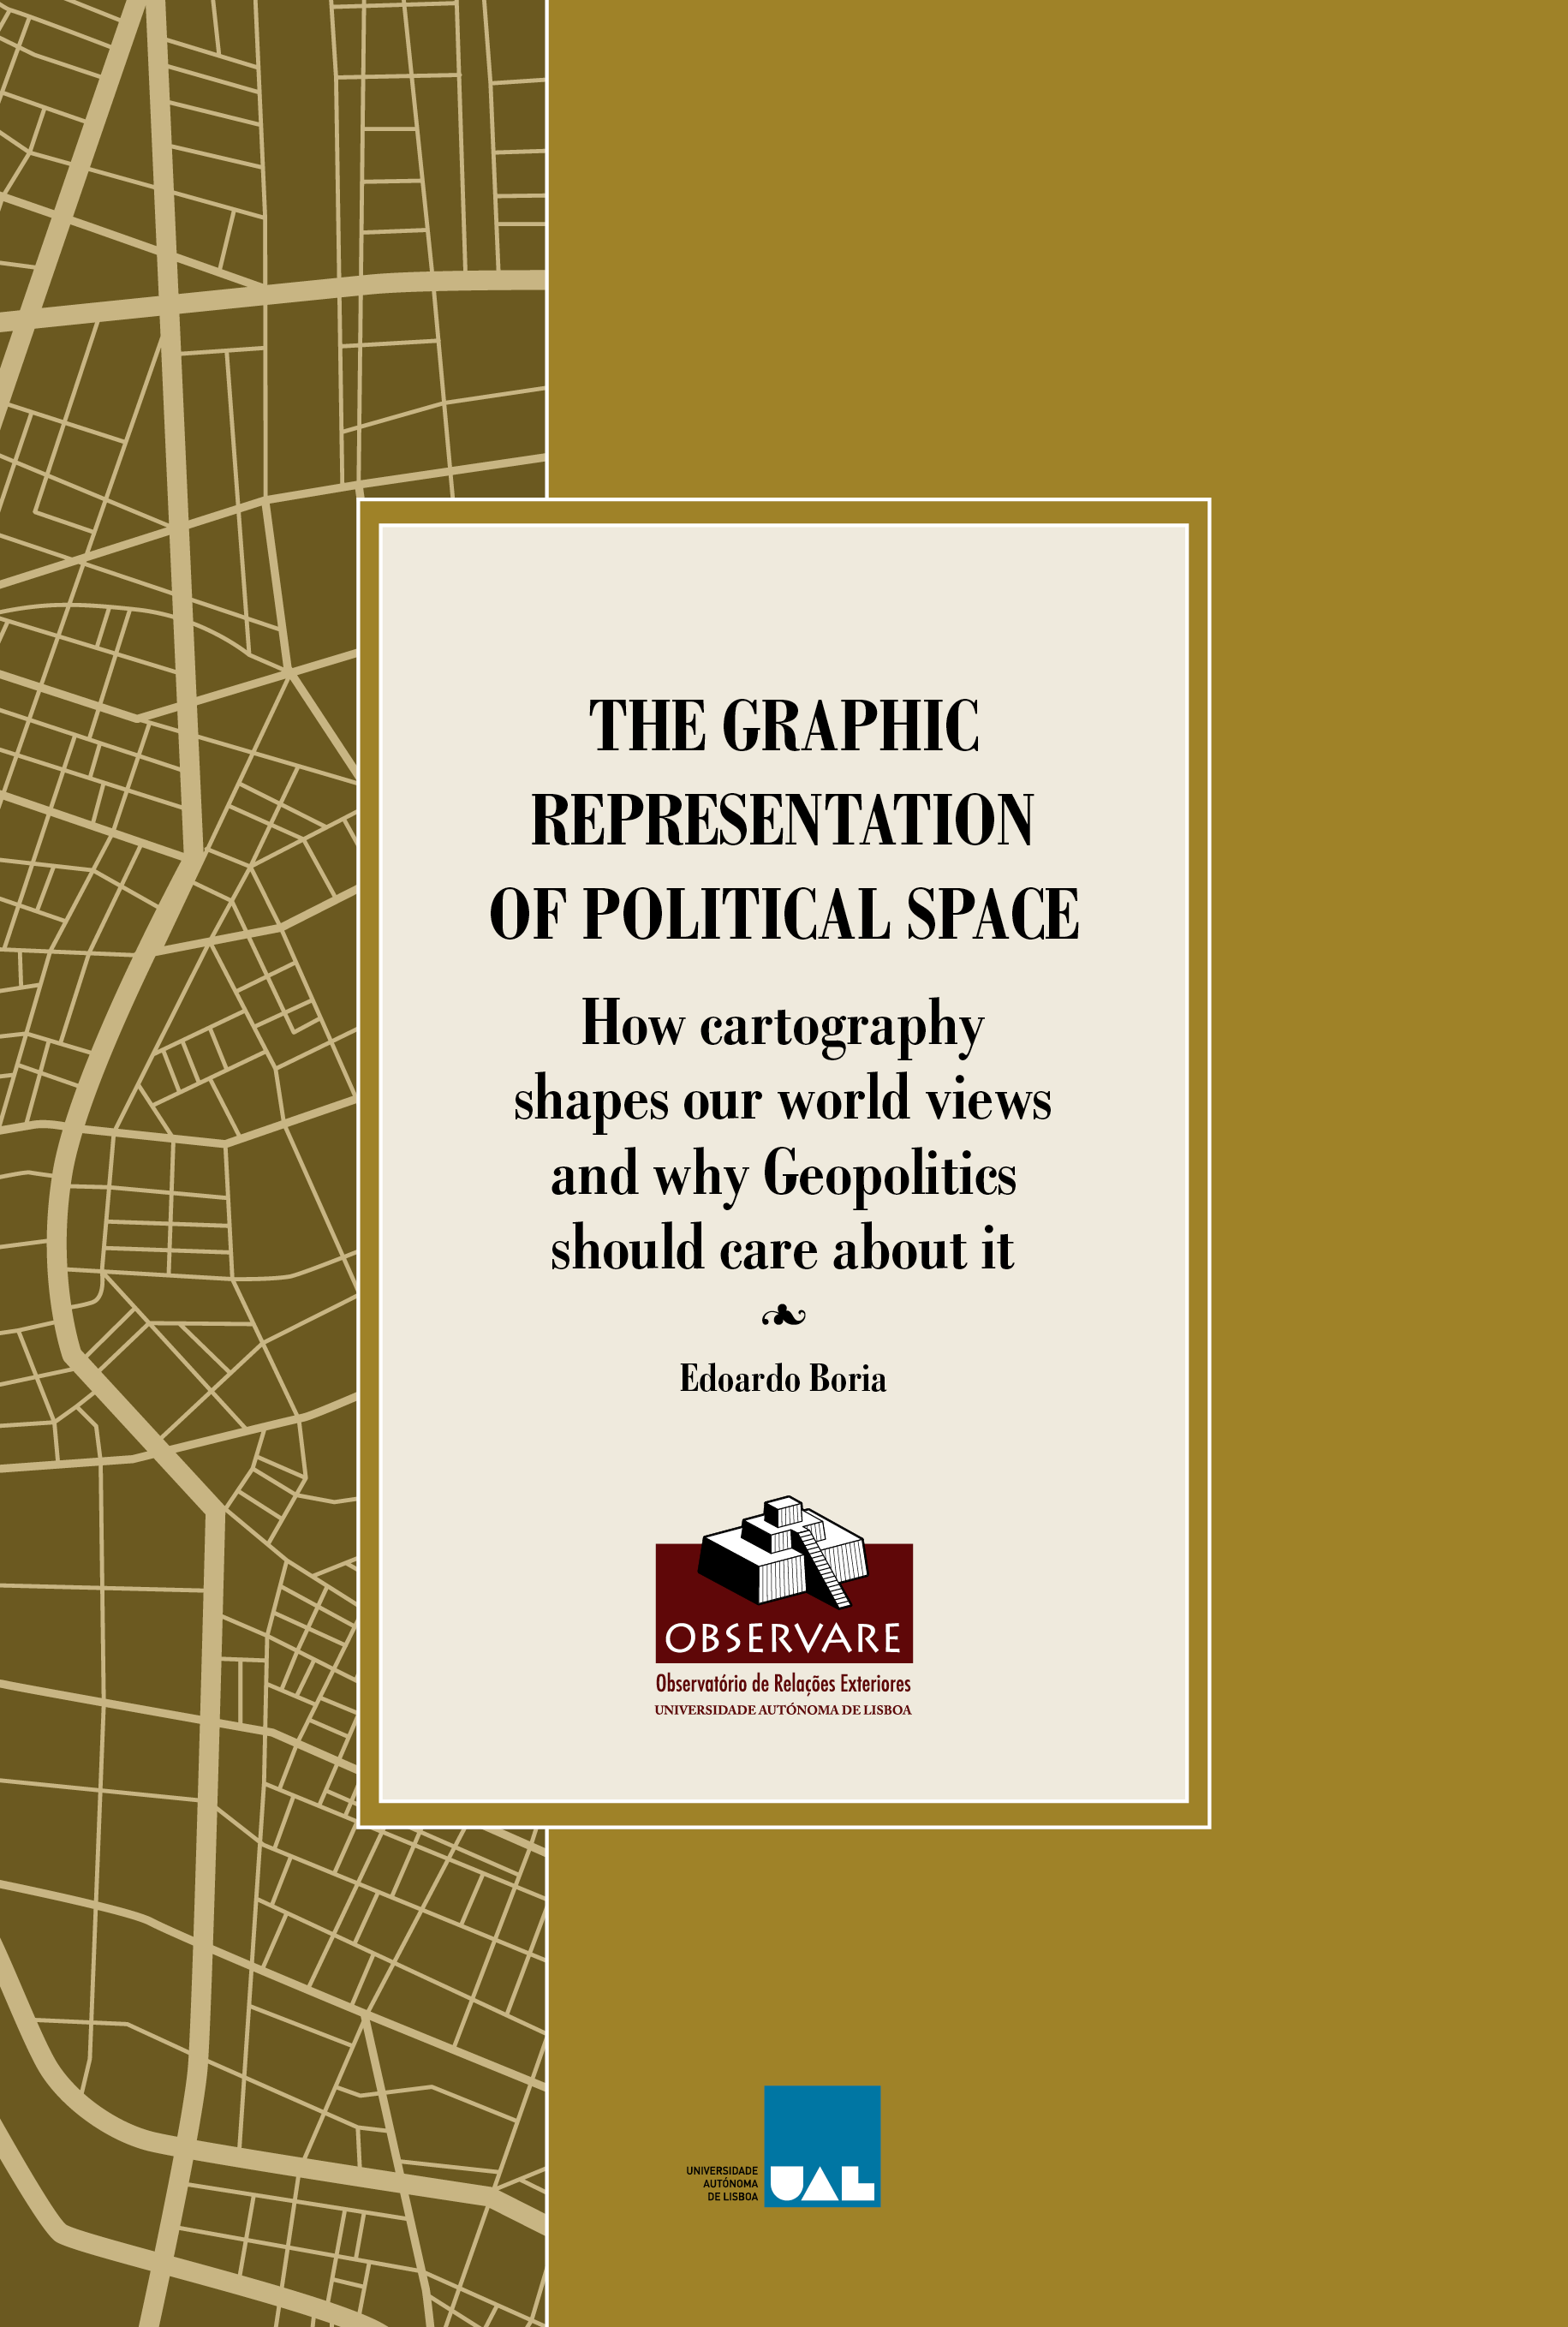 THE GRAPHIC REPRESENTATION OF POLITICAL SPACE. How cartography shapes our world views  and why Geopolitics  should care about it